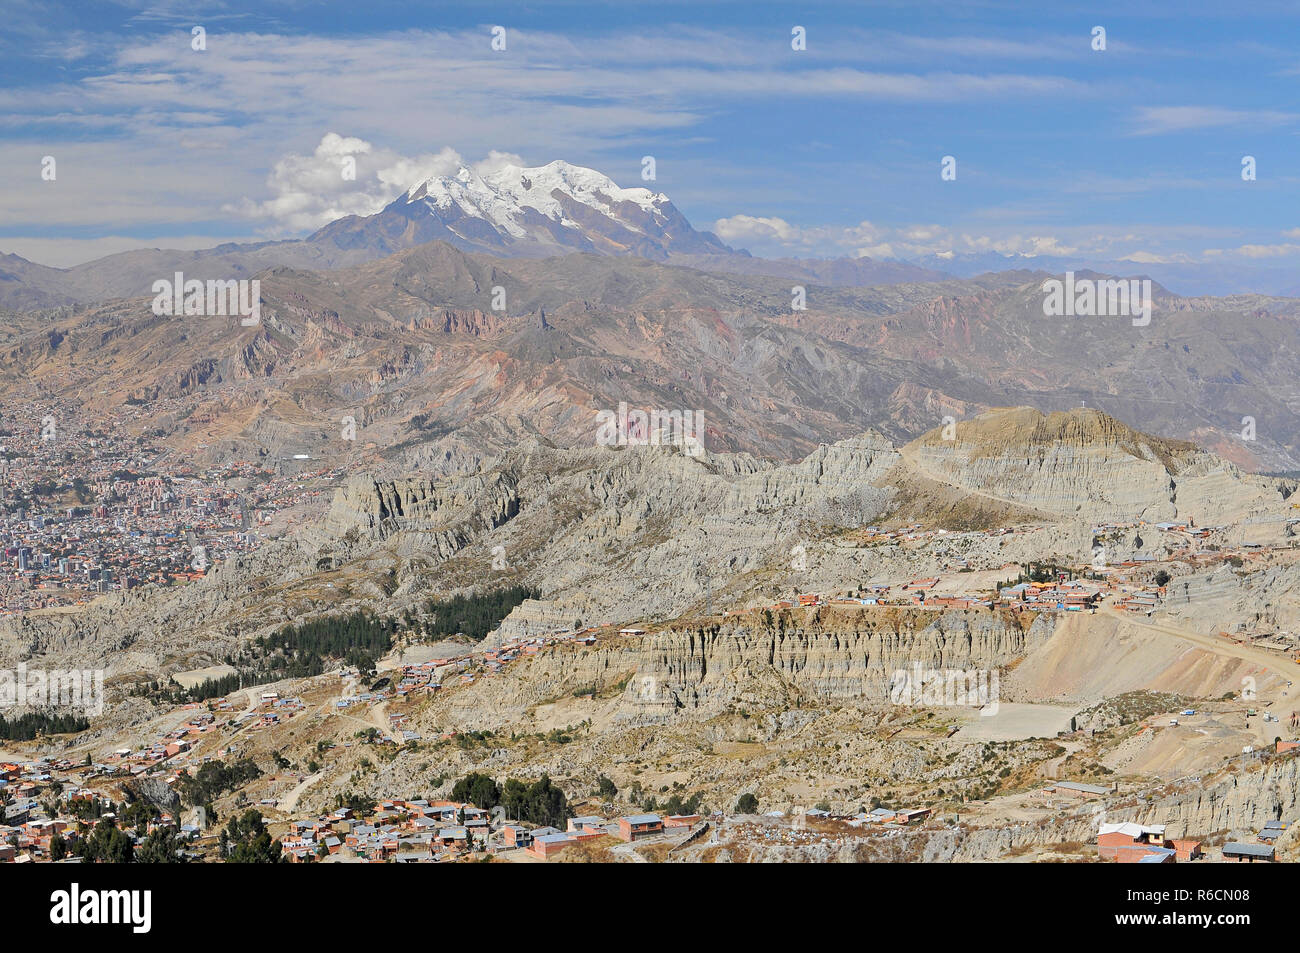 Bolivia, View Of Cordillera Real From La Paz - Stock Image